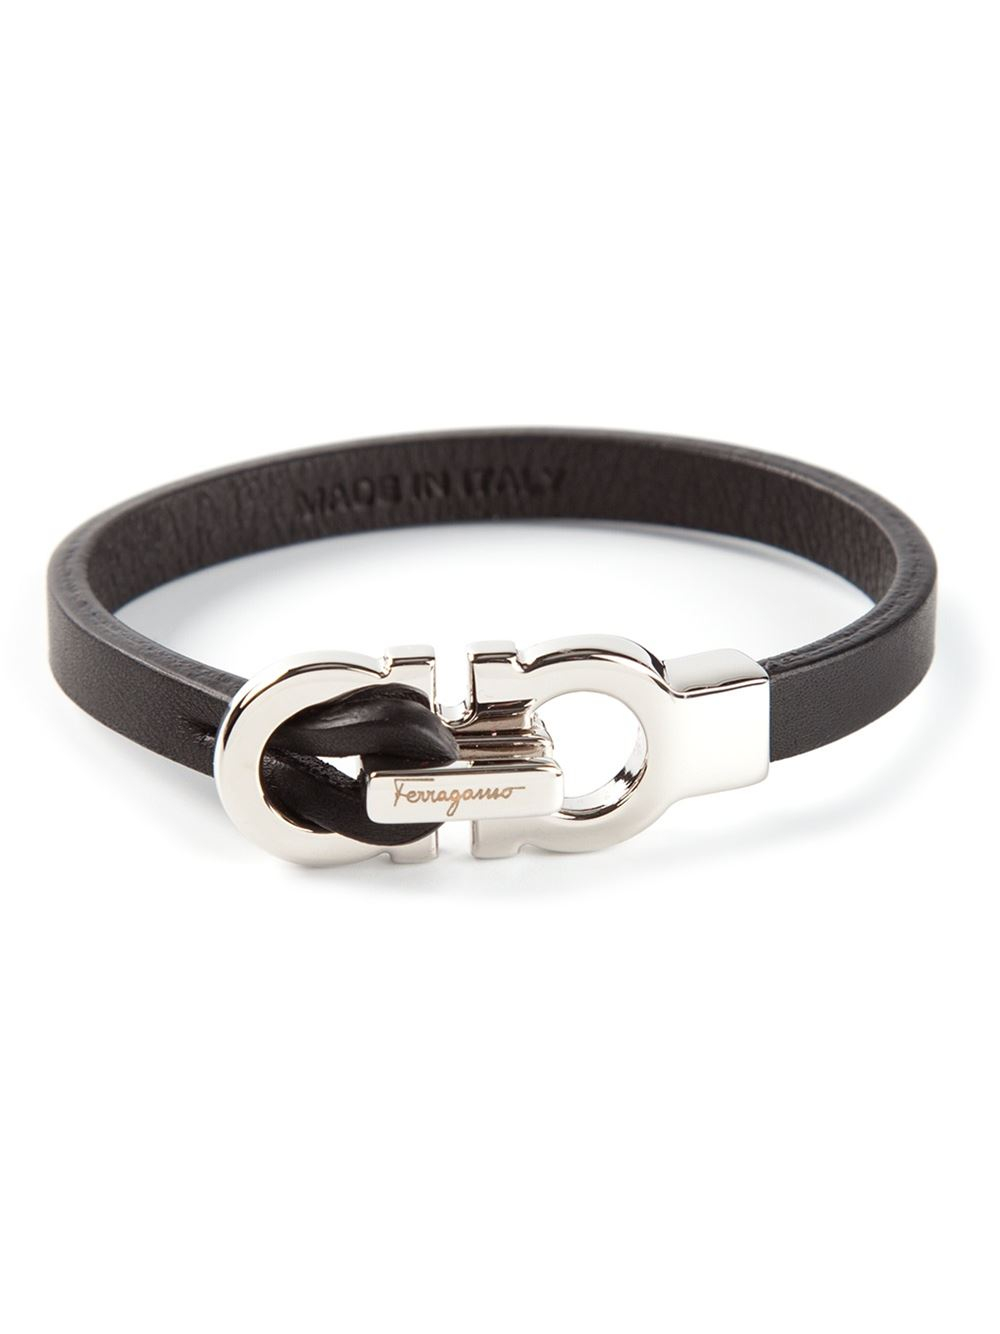 Ferragamo Gancini Bracelet in Black for Men - Lyst